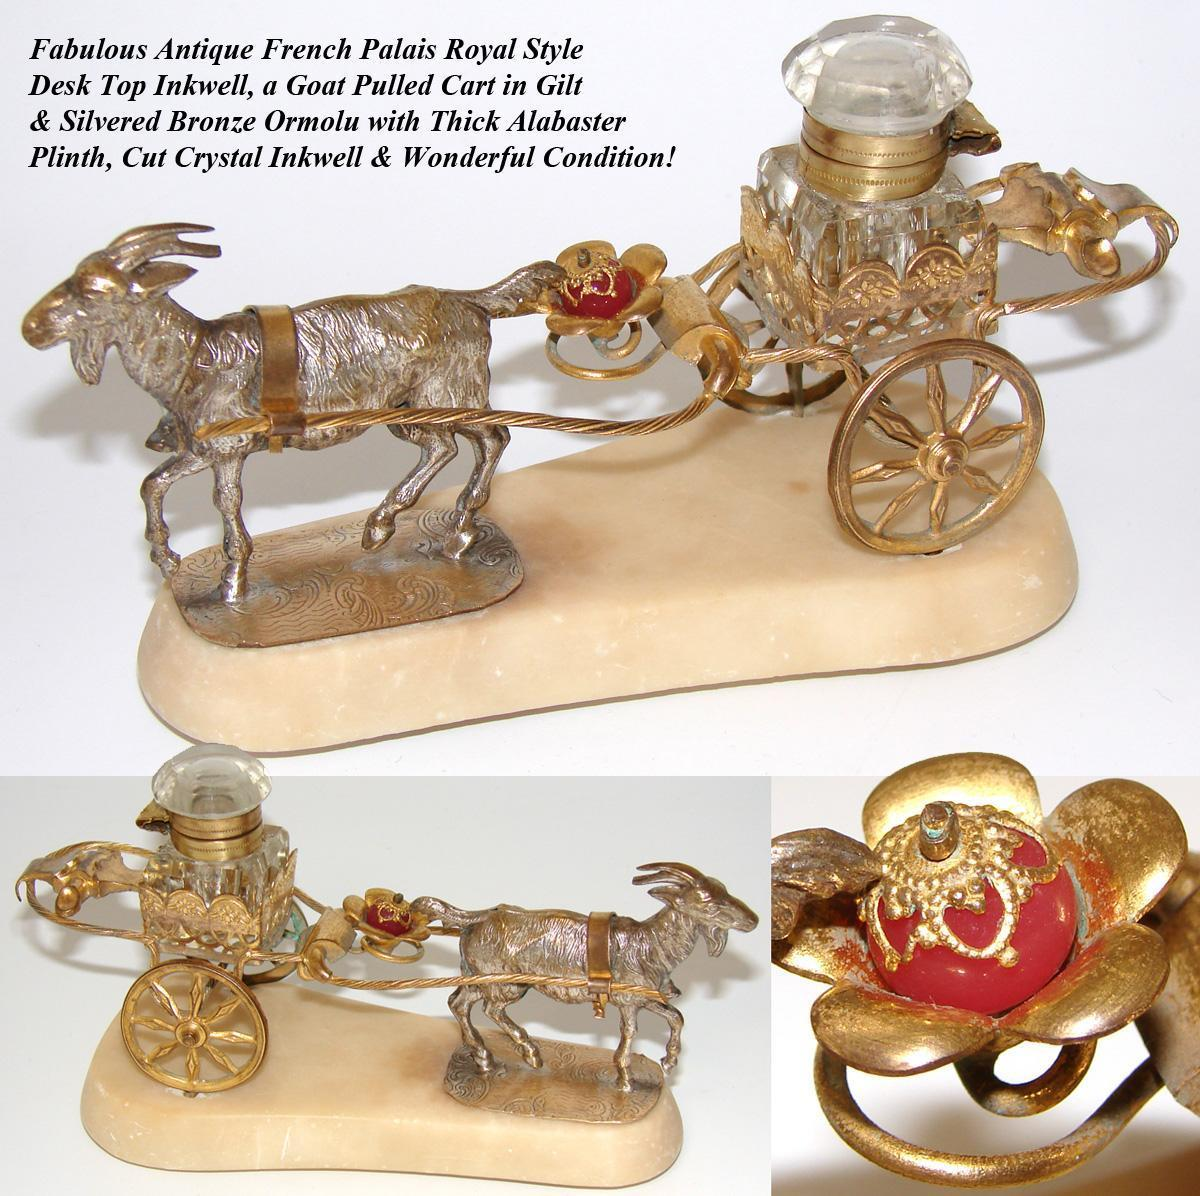 Charming Antique French Palais Royal Inkwell, Goat Pulled Cart with Pink Opaline Accent